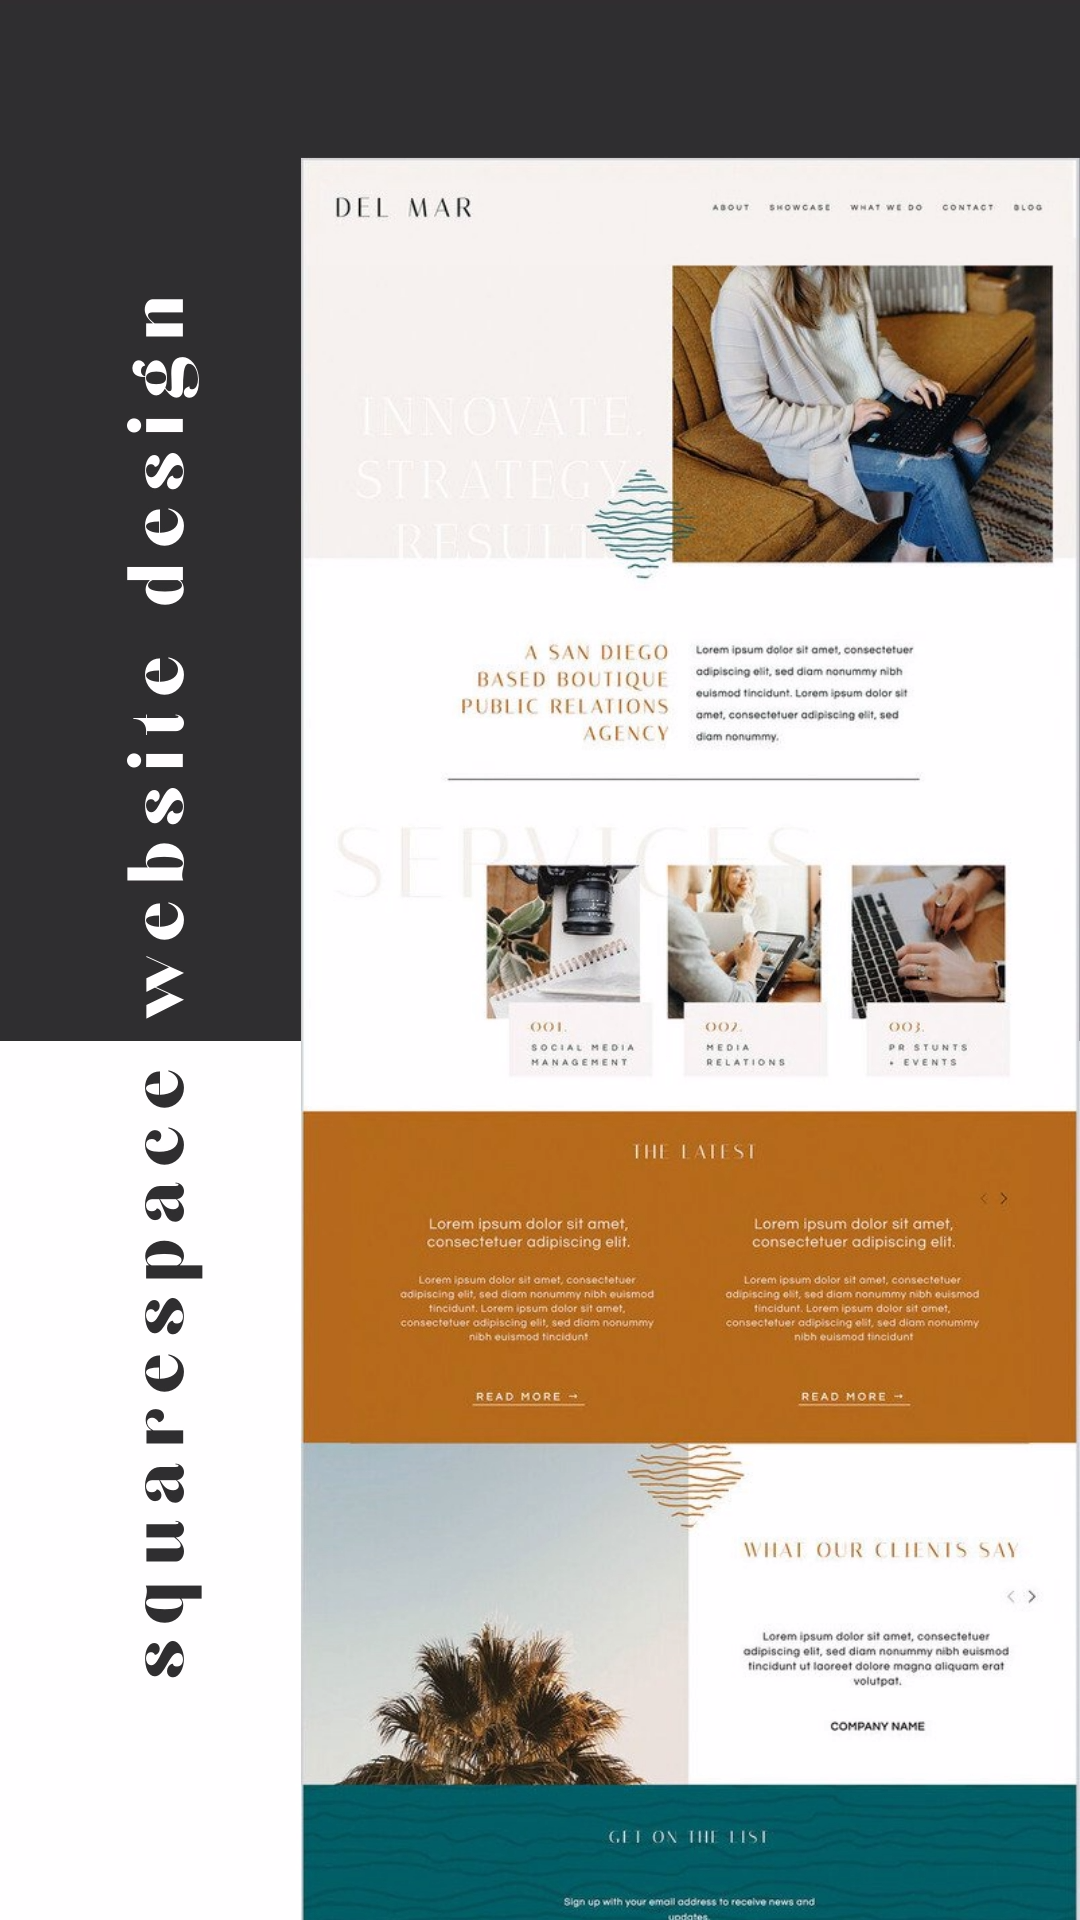 Squarespace Website Design Template for Agency or Fitness Studio - #agency #design #fitness #squarespace #studio #template #website - #DenDesign